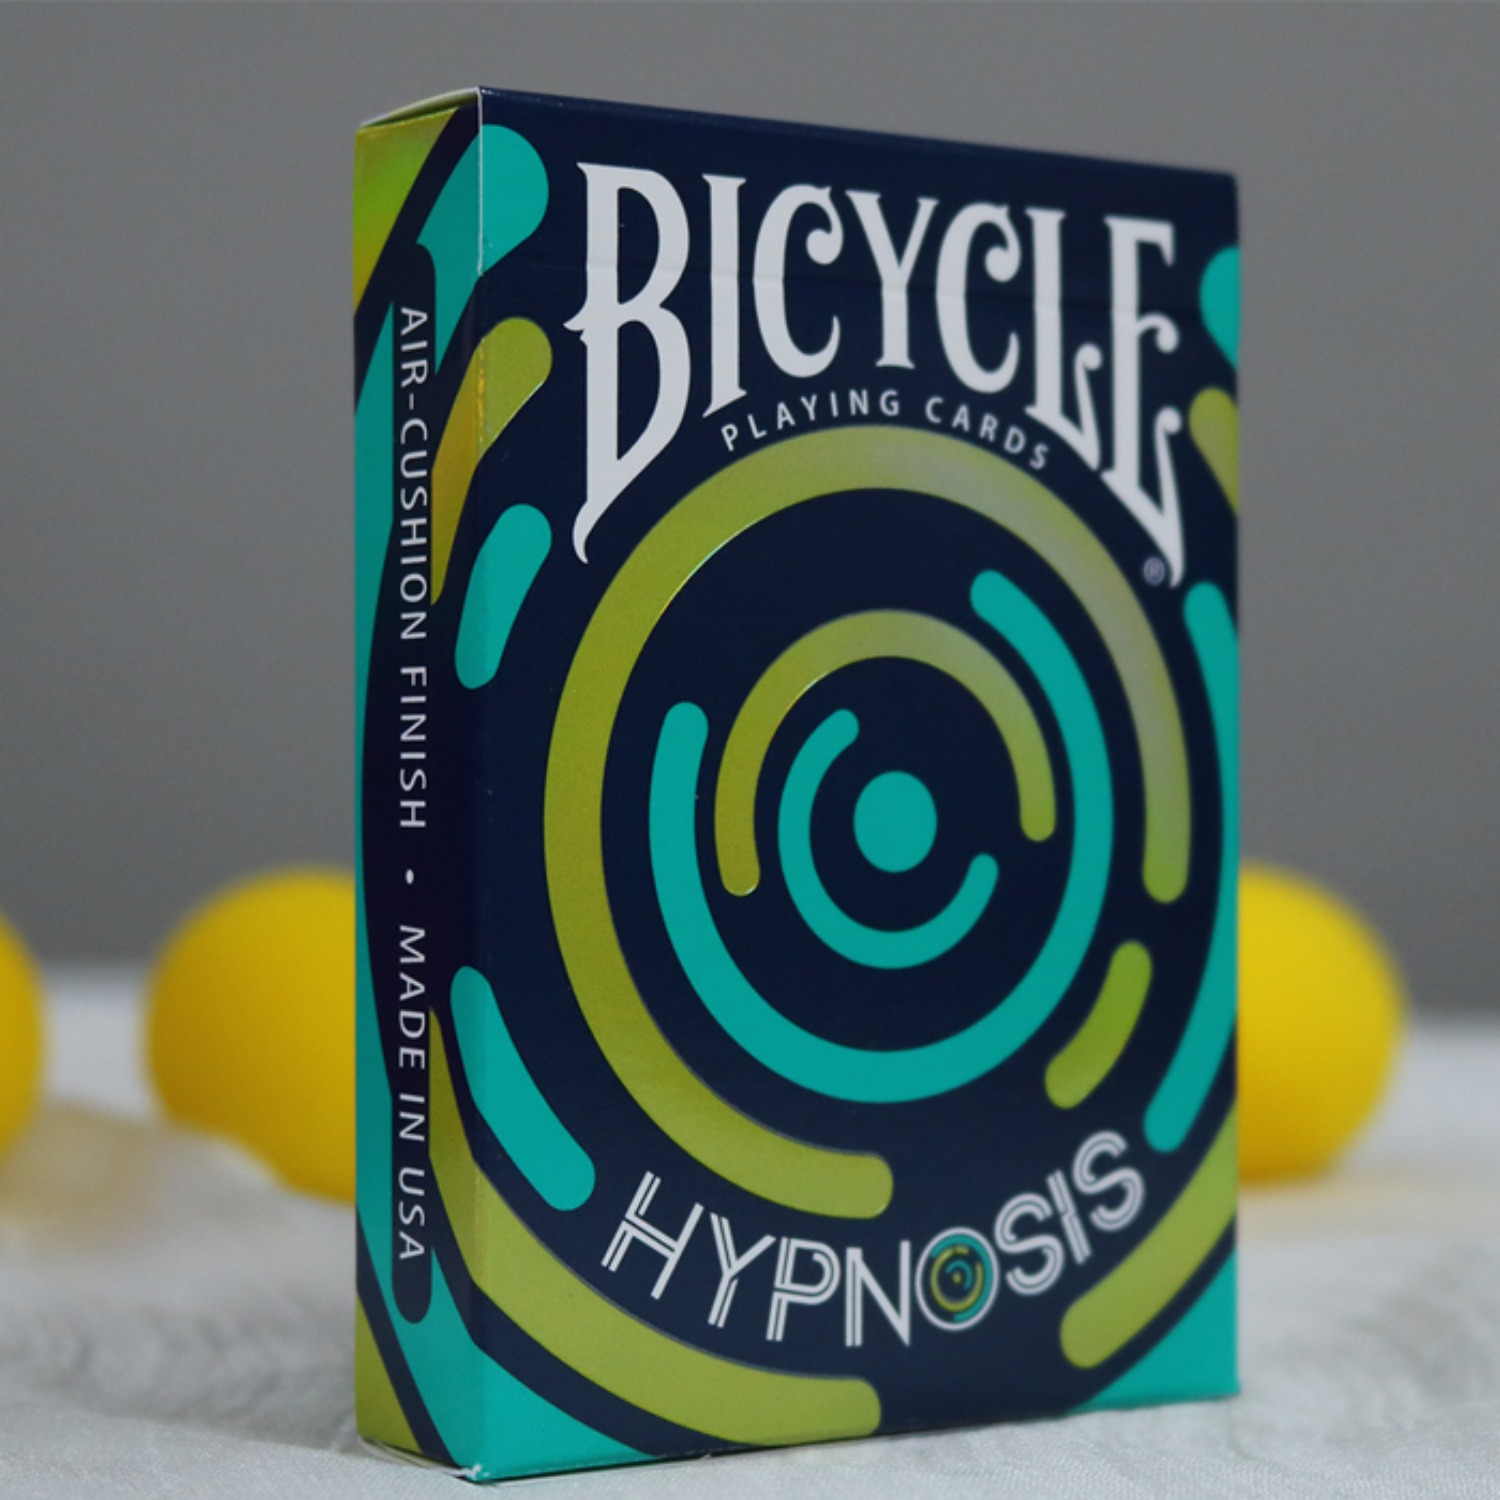 [힙노시스덱] Bicycle Hypnosis